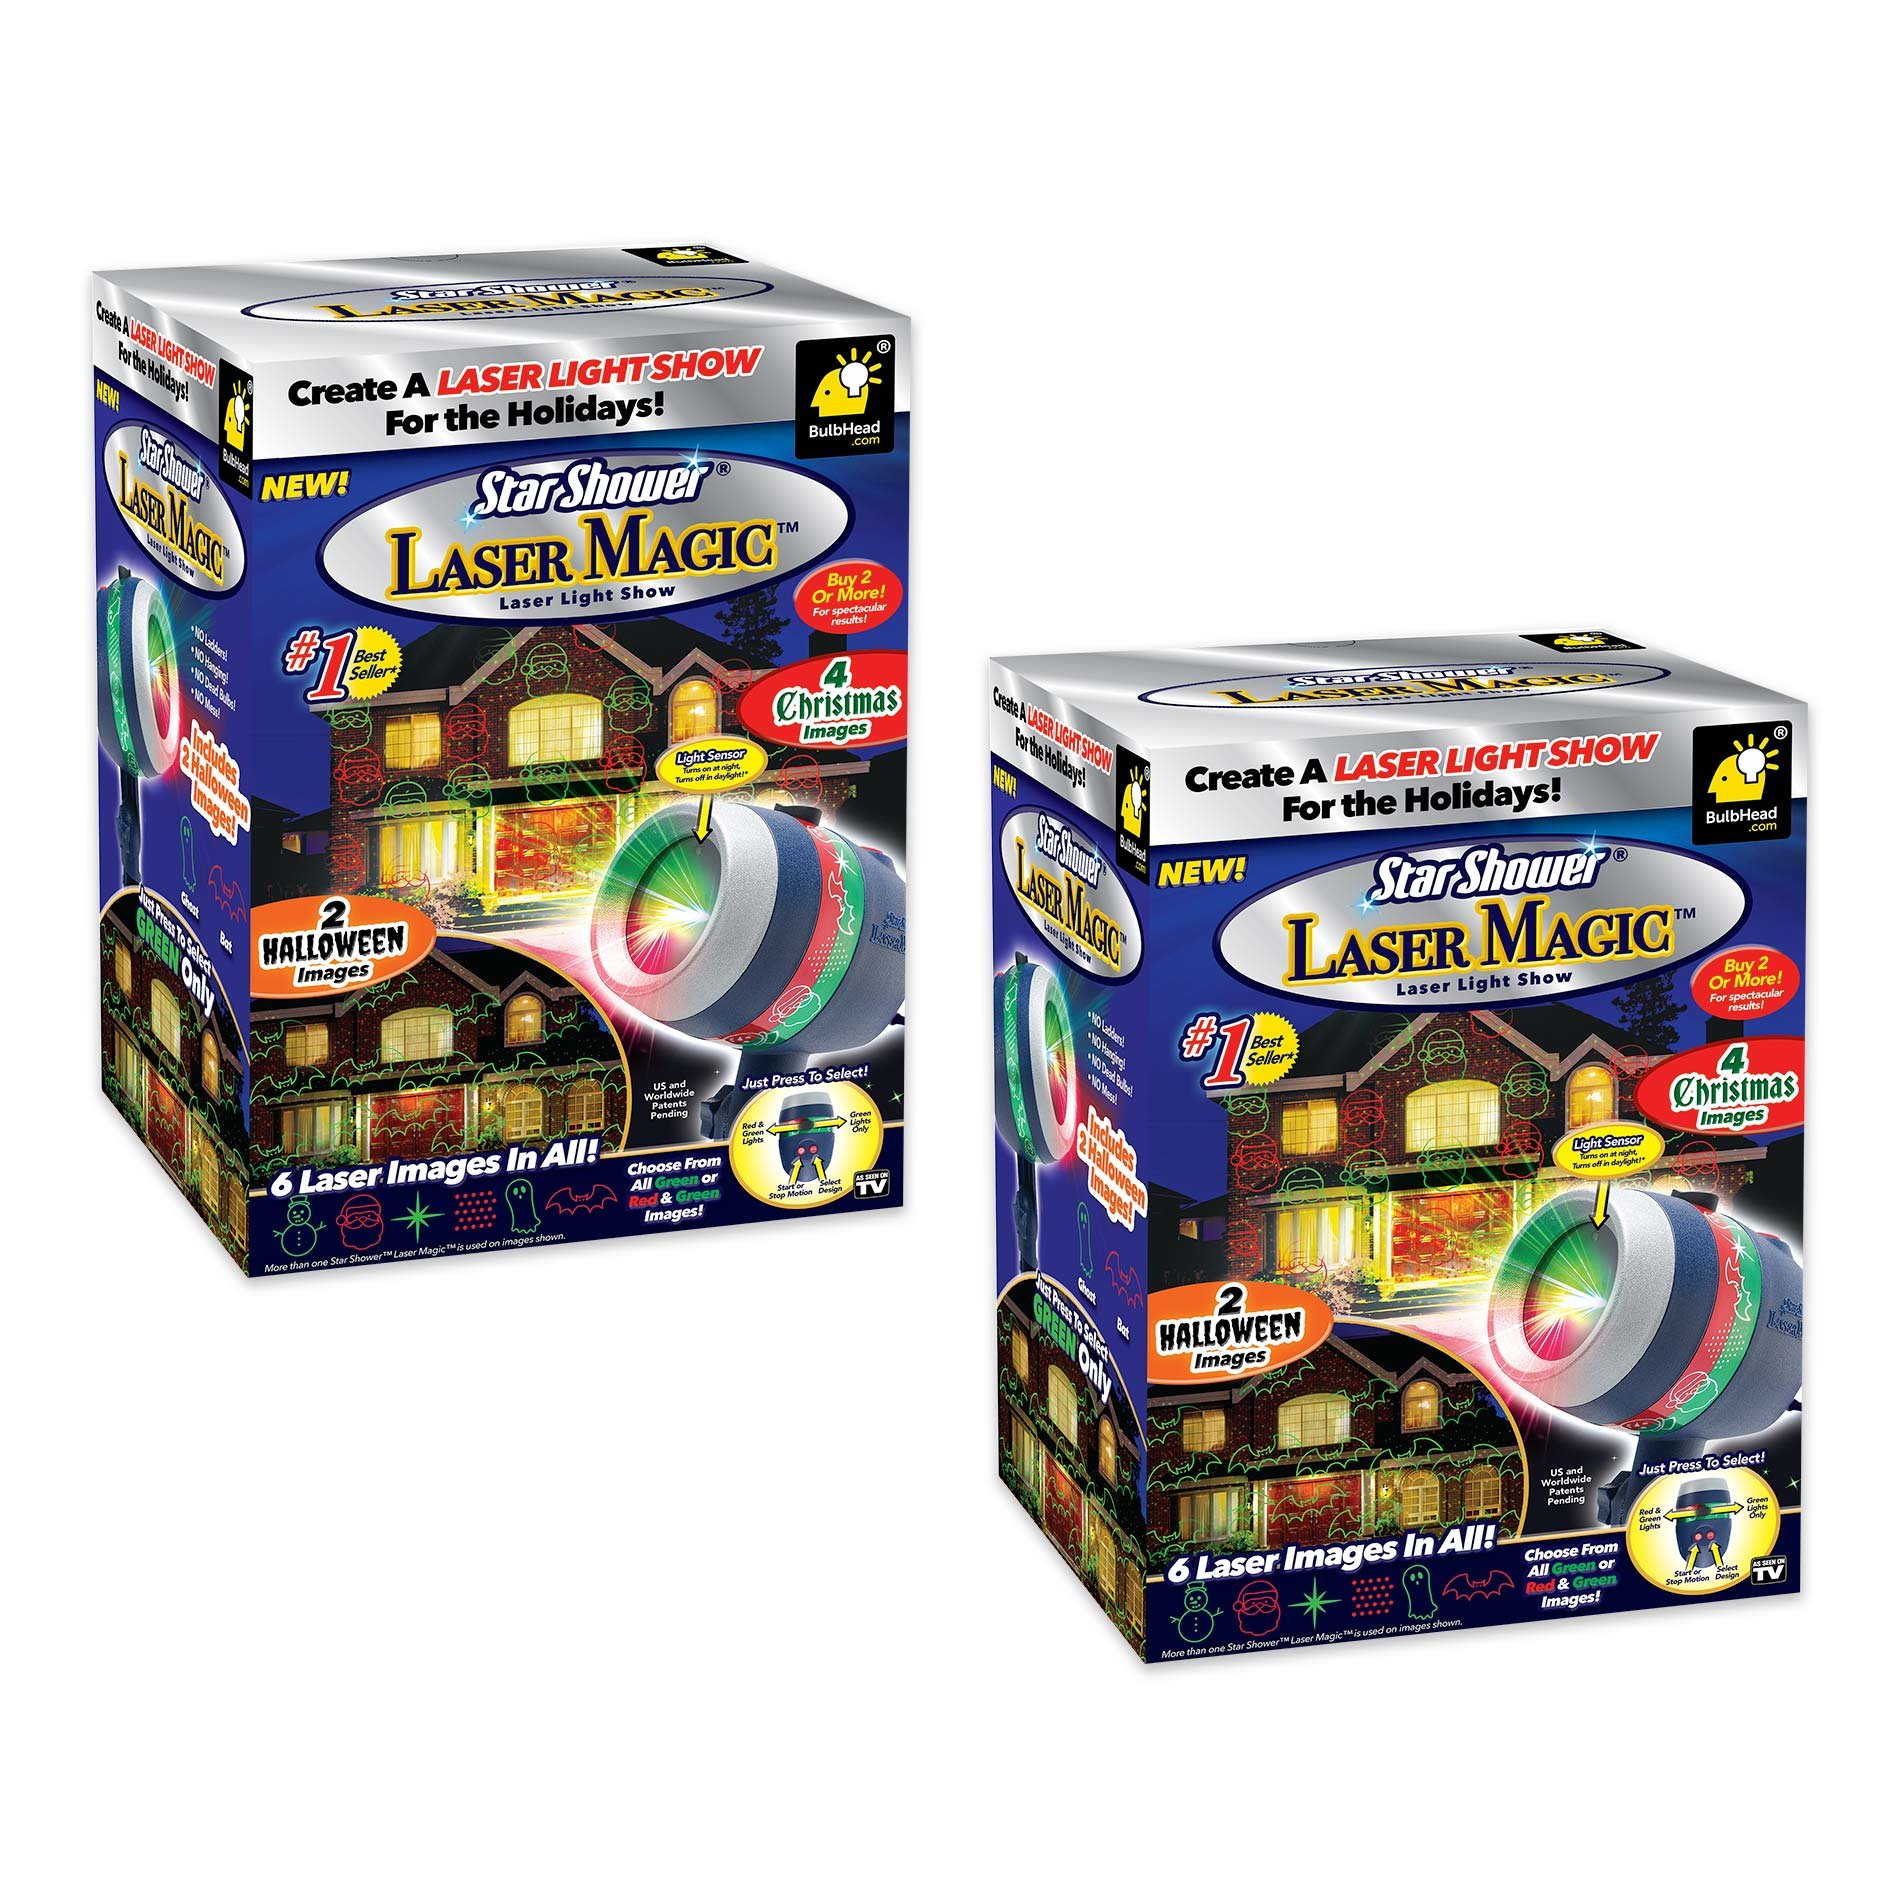 New 2017 Star Shower Laser Magic by BulbHead Includes 6 Festive Designs for Christmas (4) and Halloween (2) (2 Pack)